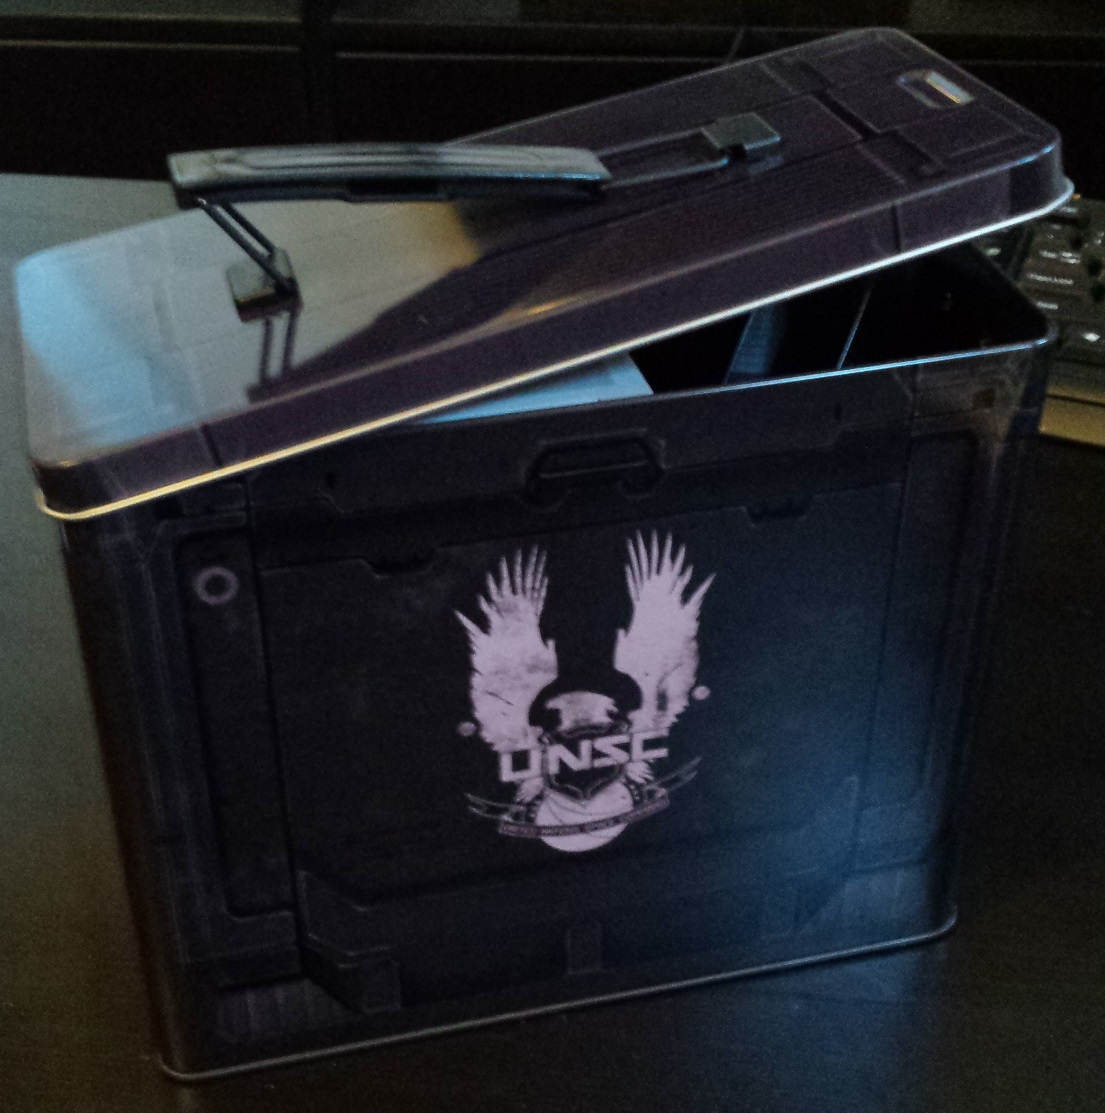 Halo, loot crate, loot crate review, december loot crate, discovery loot crate